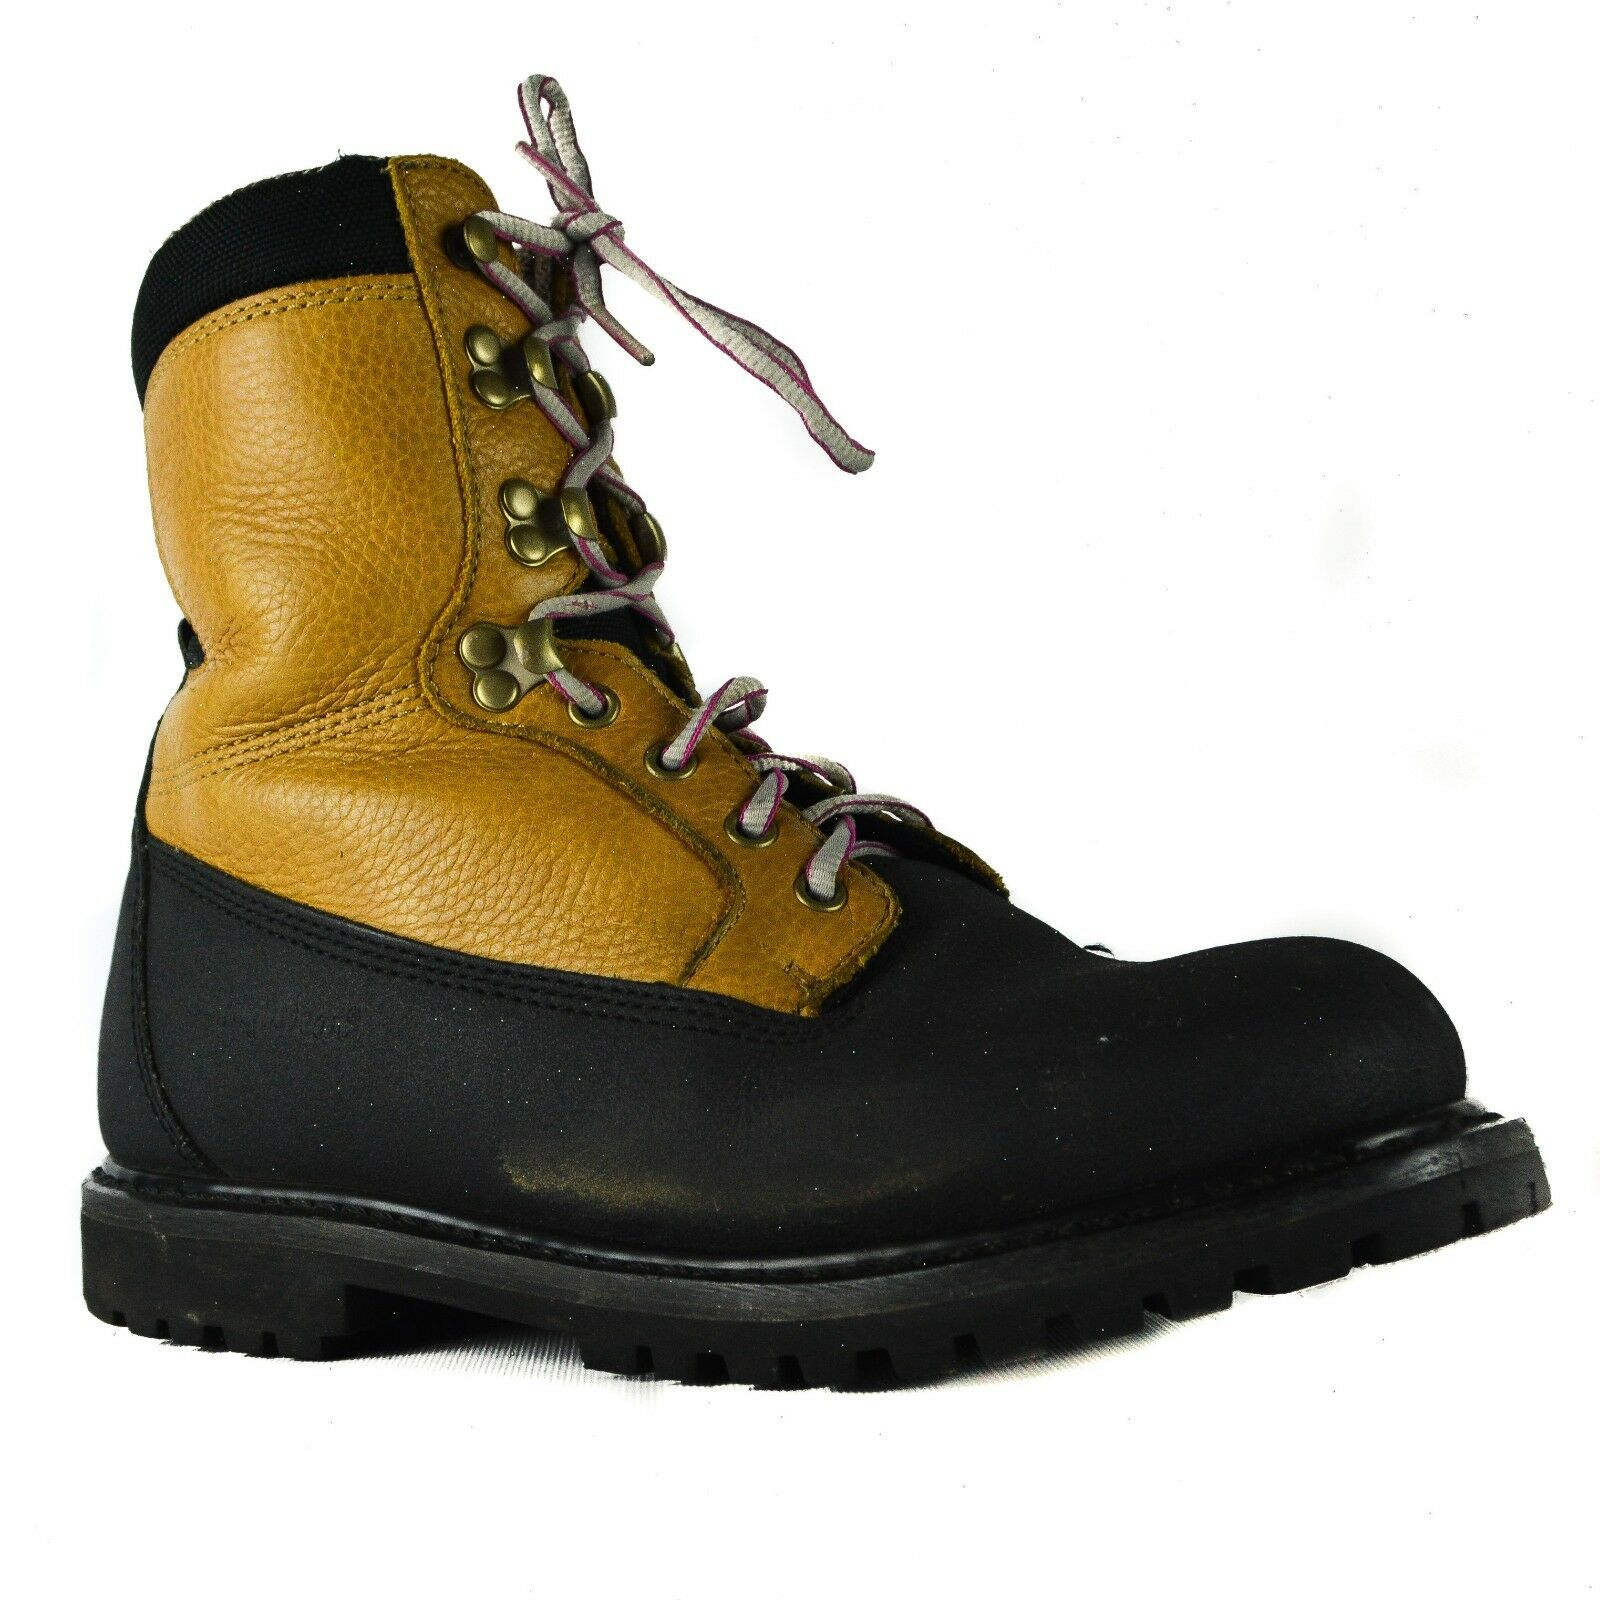 RefrigiWear Size 8 Barricade Insulated Waterproof Brown Leather Work Boots